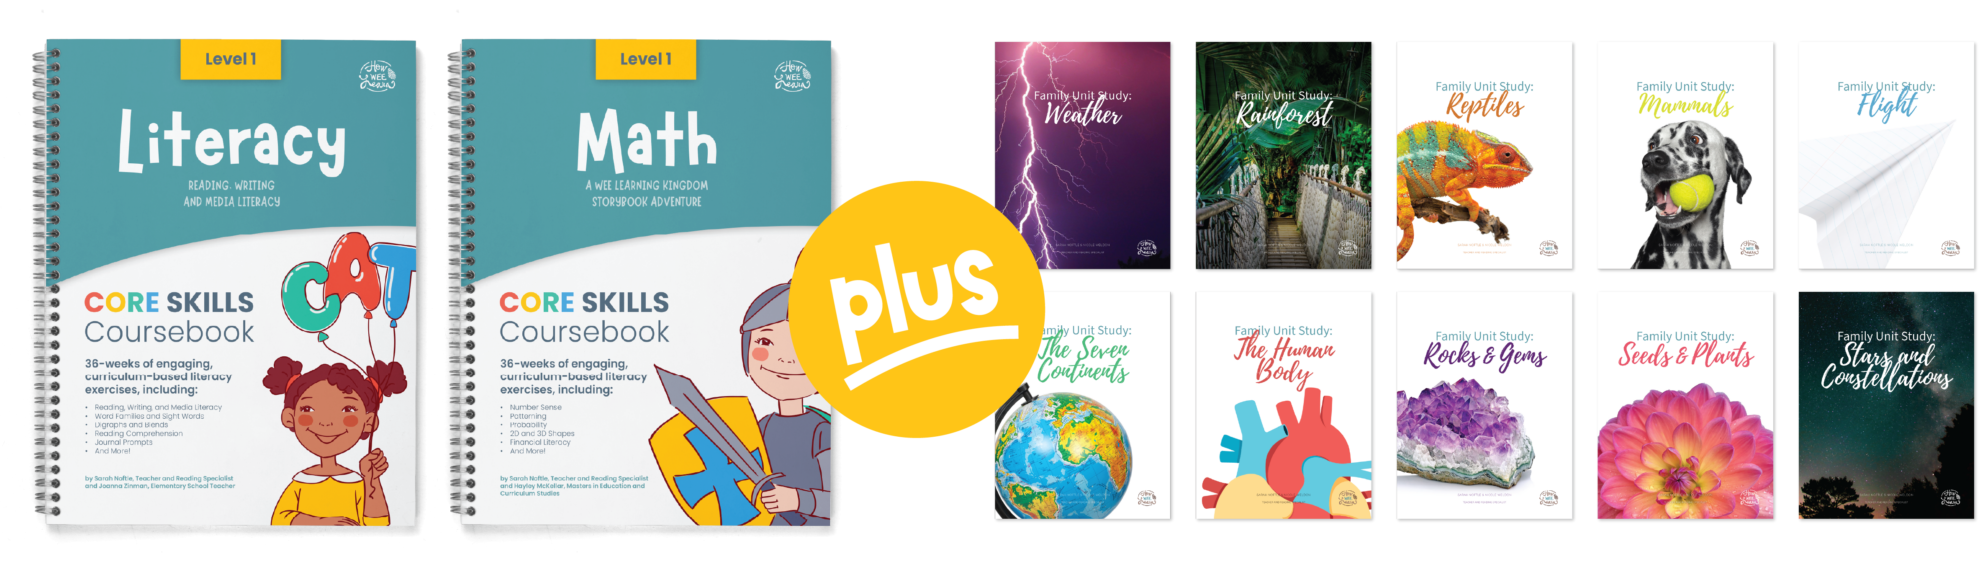 Cover Pages of Core Skills Coursebooks and 10 Family Unit Studies Bundle